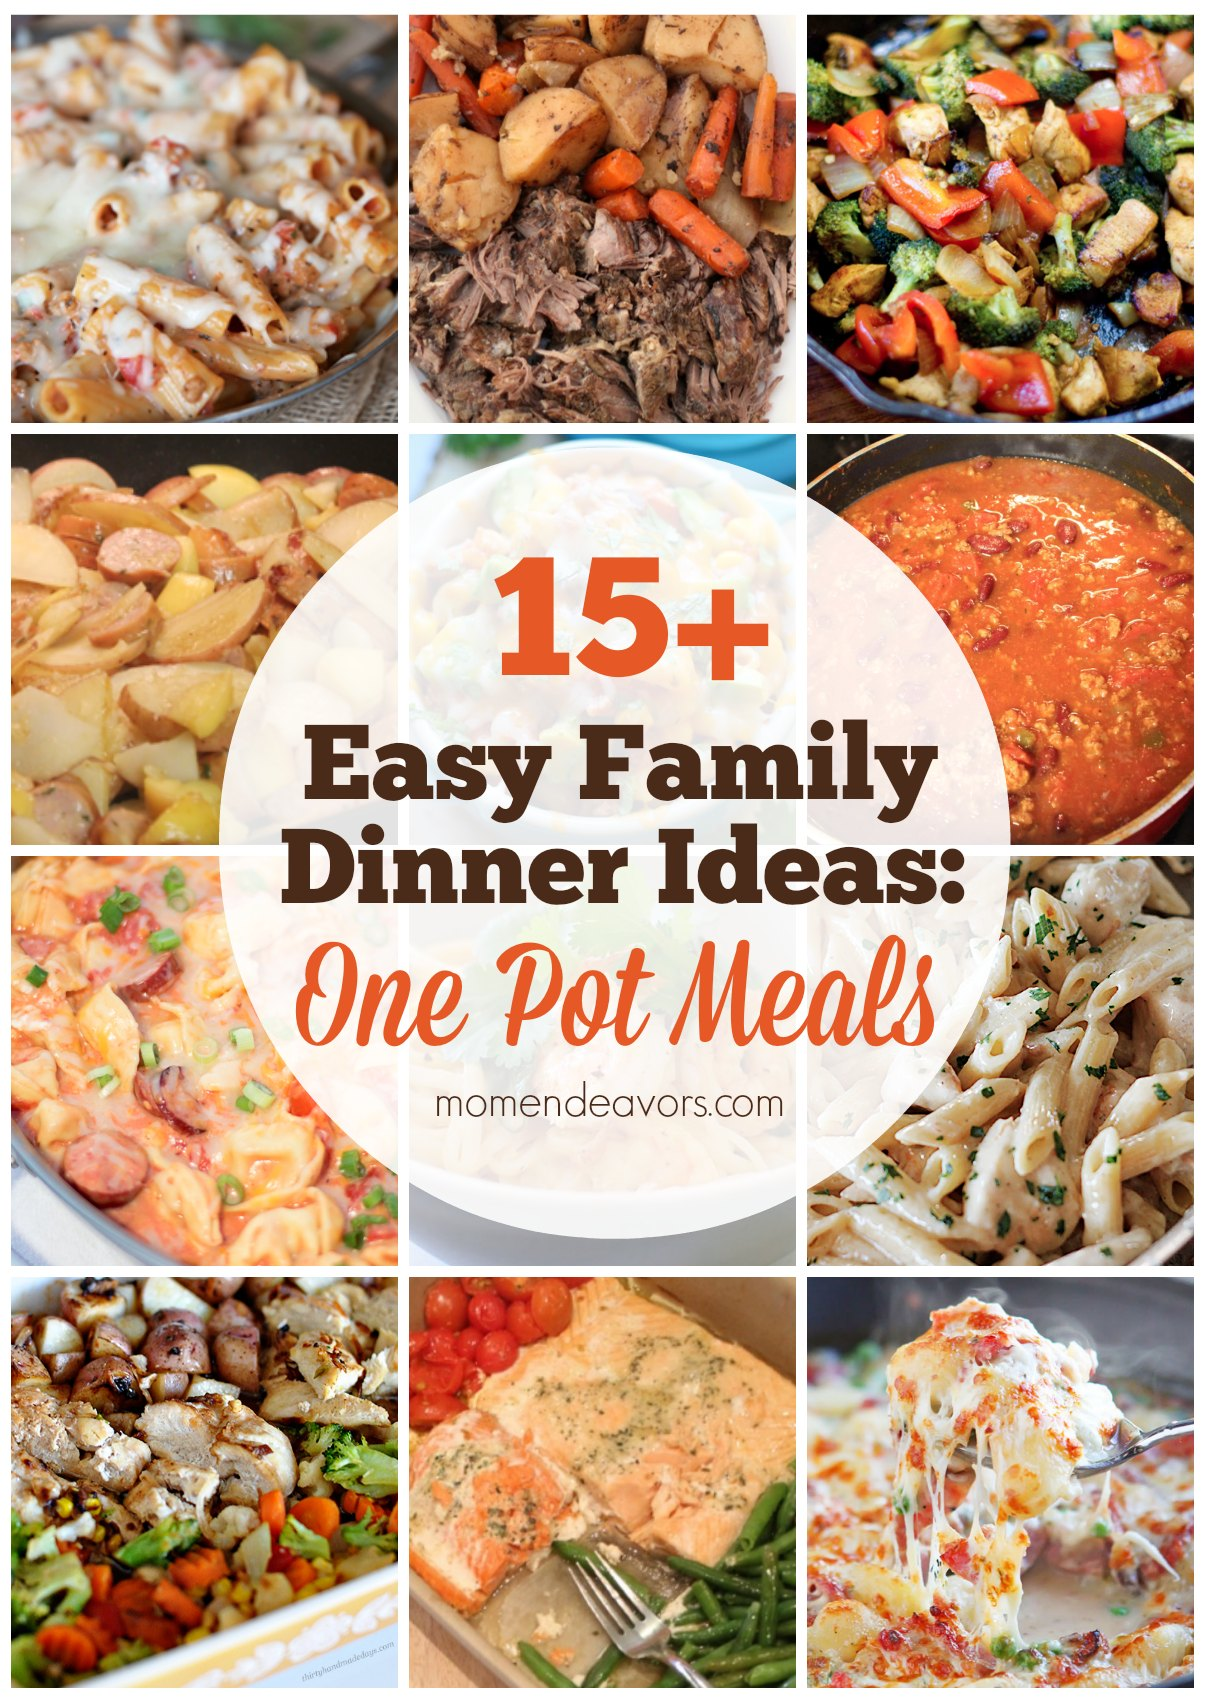 4 easy family dinners to serve your family this week!